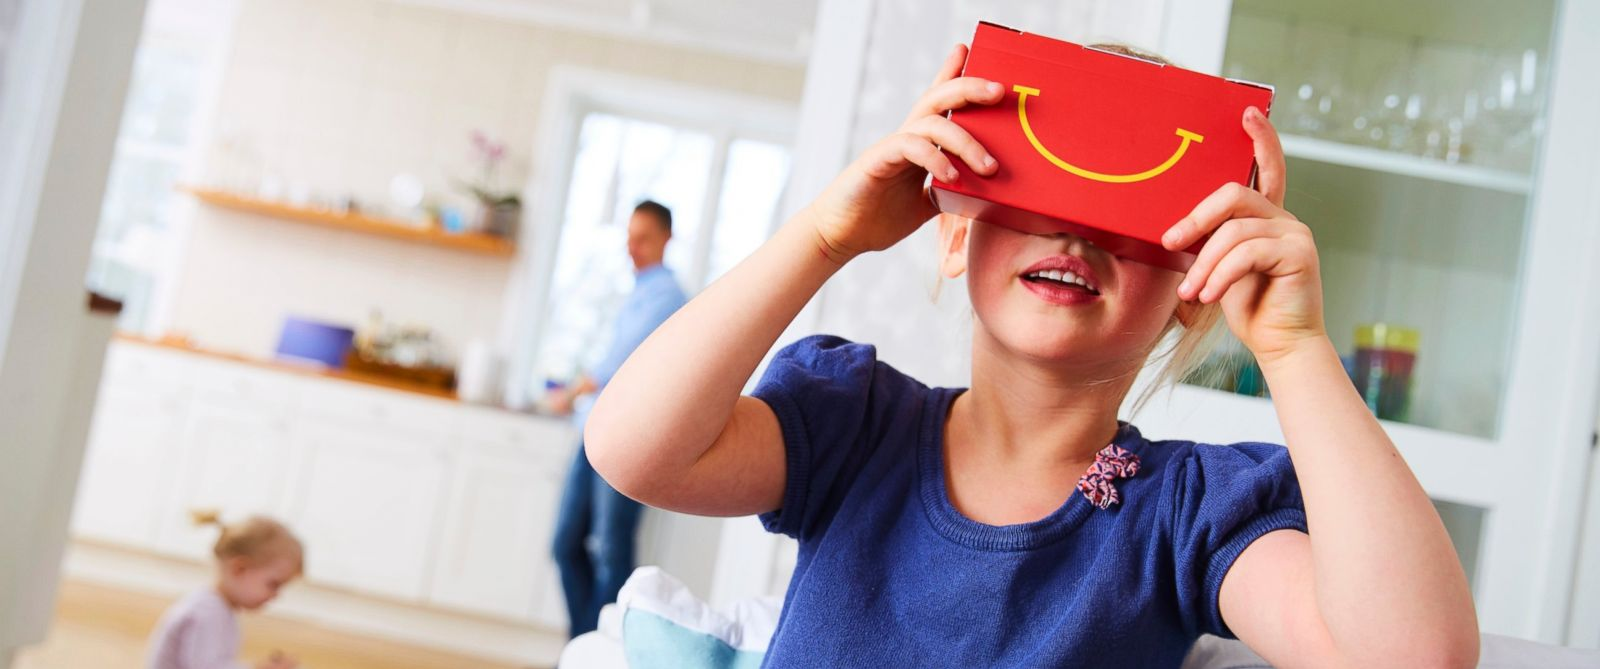 PHOTO: McDonalds in Sweden is offering VR goggles made from Happy Meal boxes.